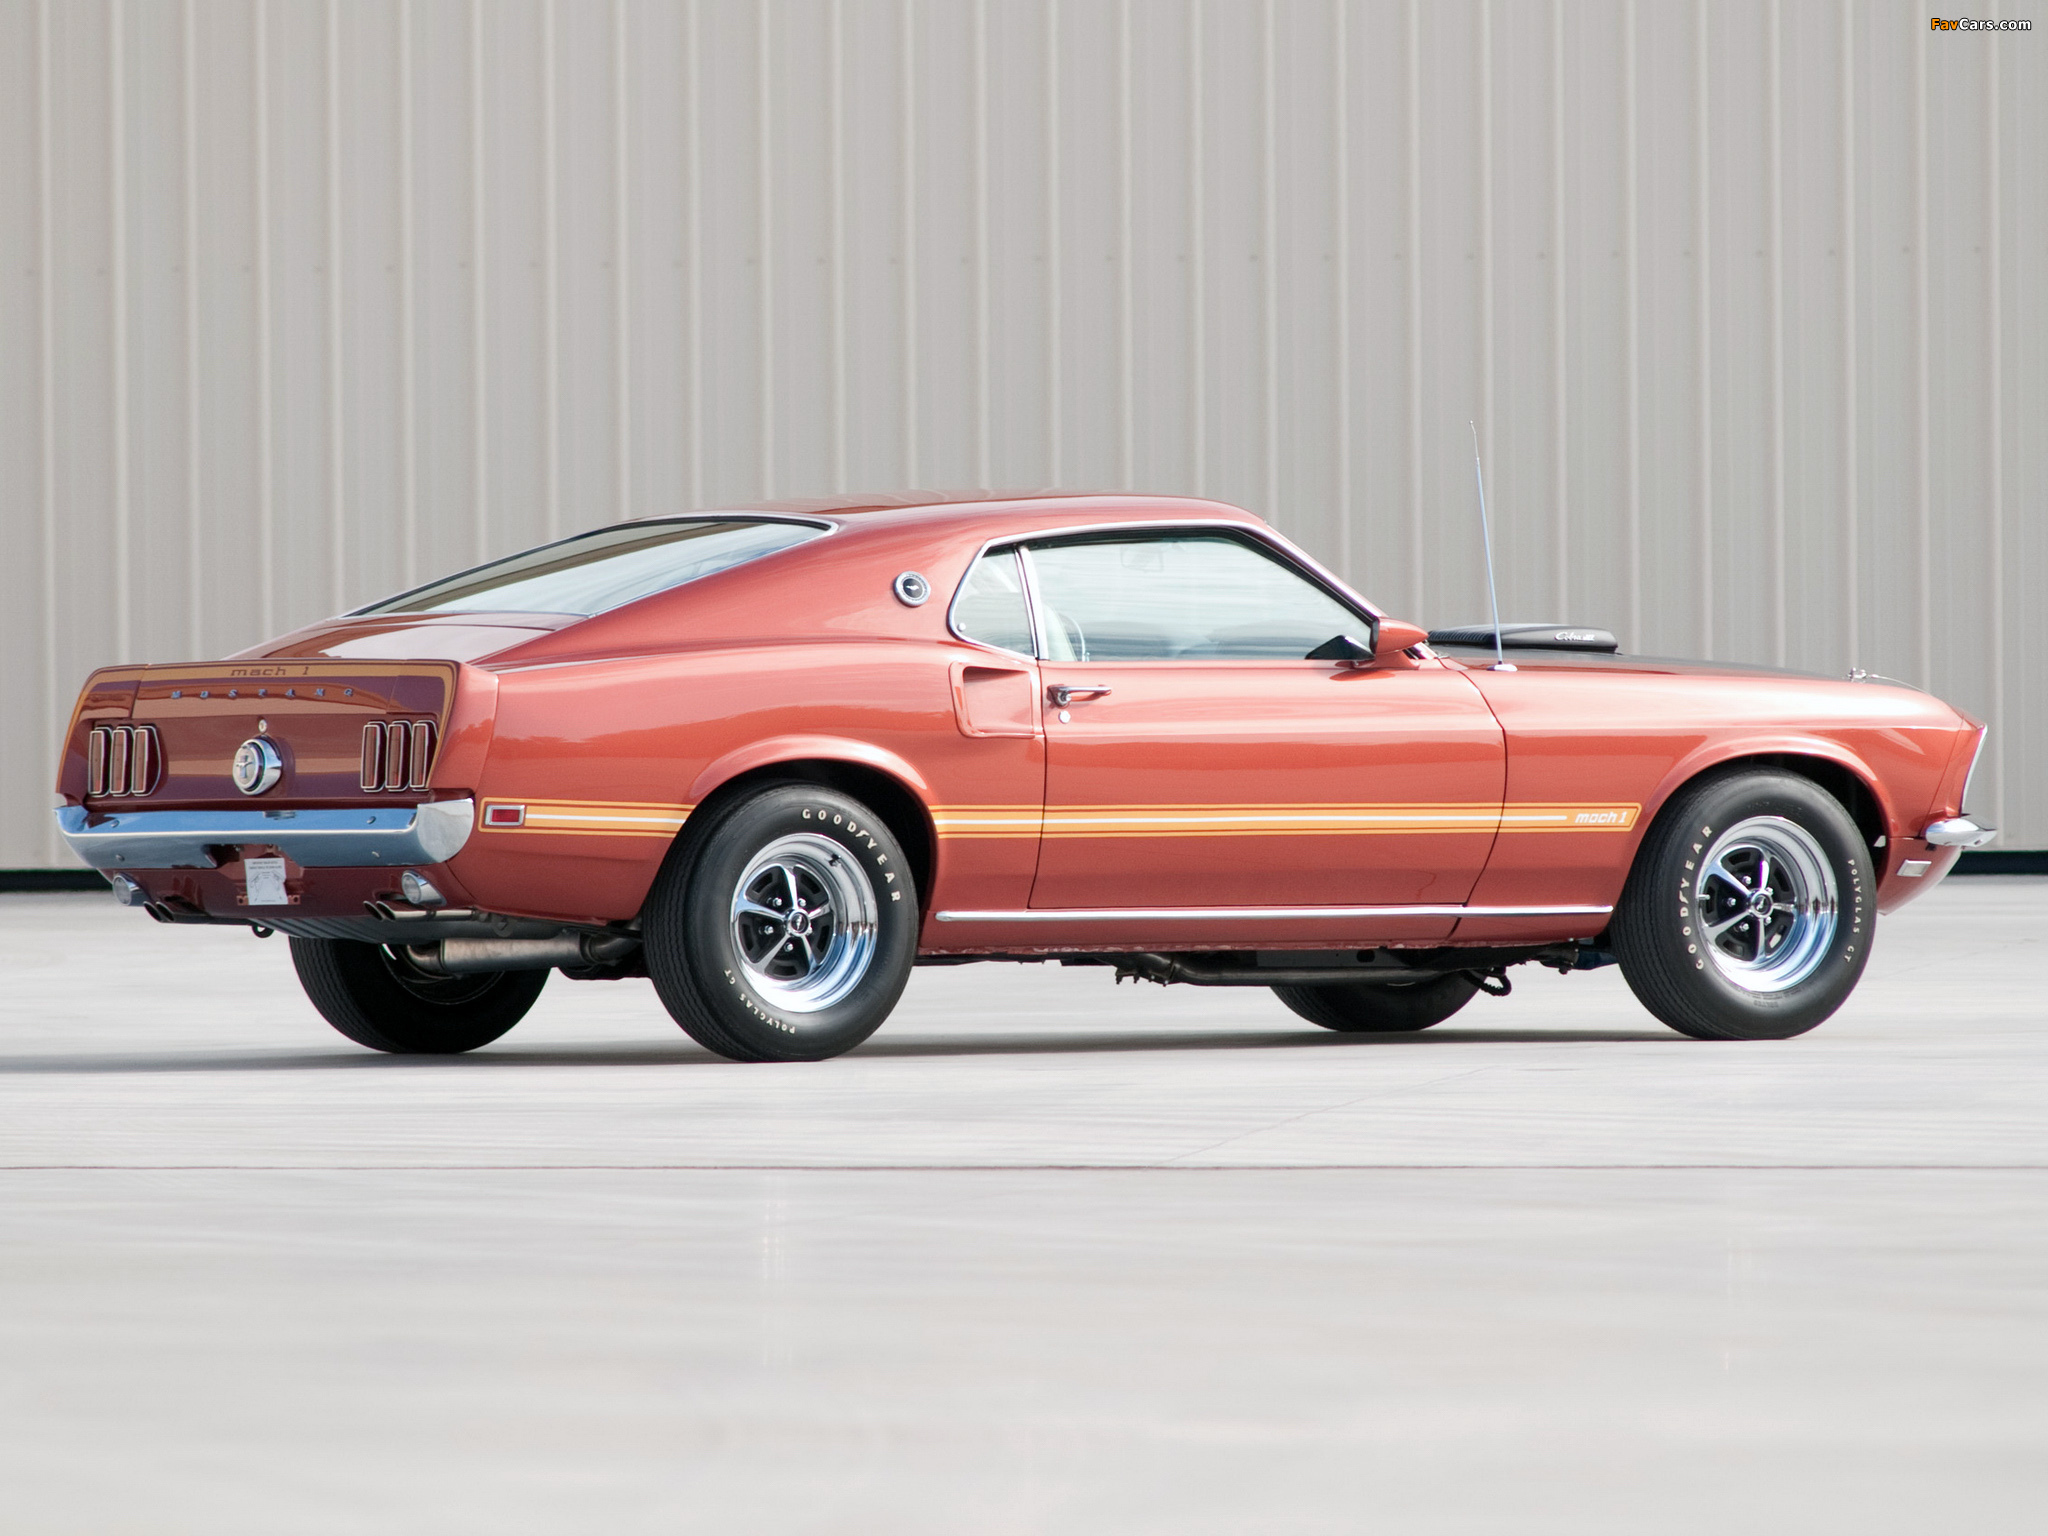 Mustang Mach 1 428 Super Cobra Jet 1969 Wallpapers 2048x1536 Ford Shelby 2048 X 1536